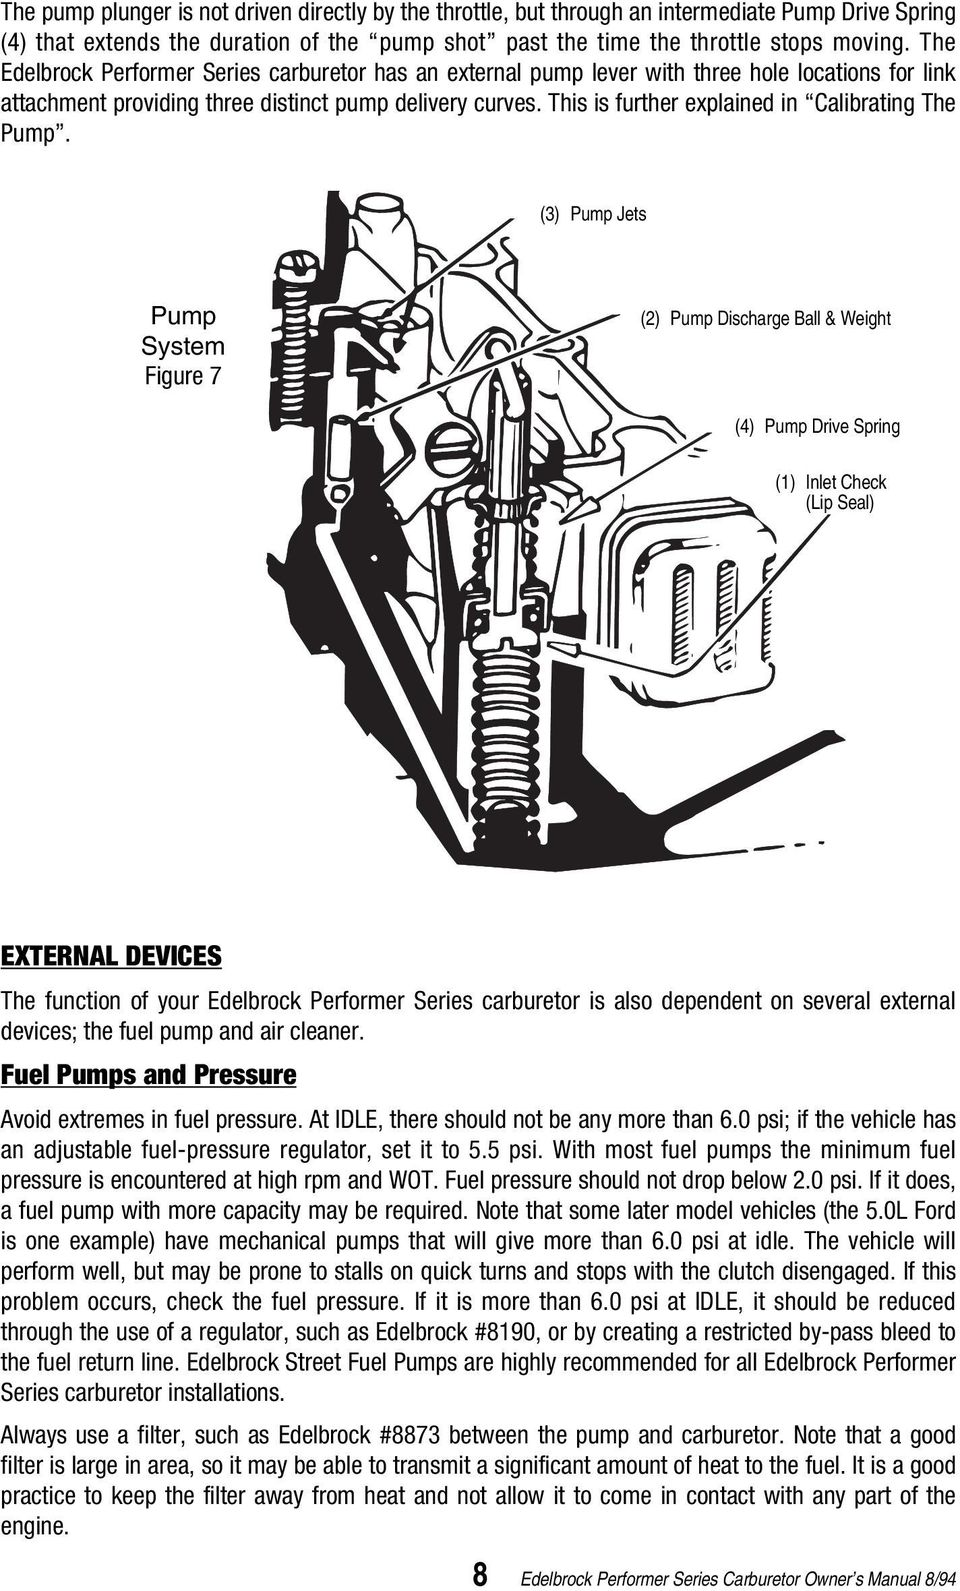 PERFORMER SERIES CARBURETOR  Owner s Manual For these